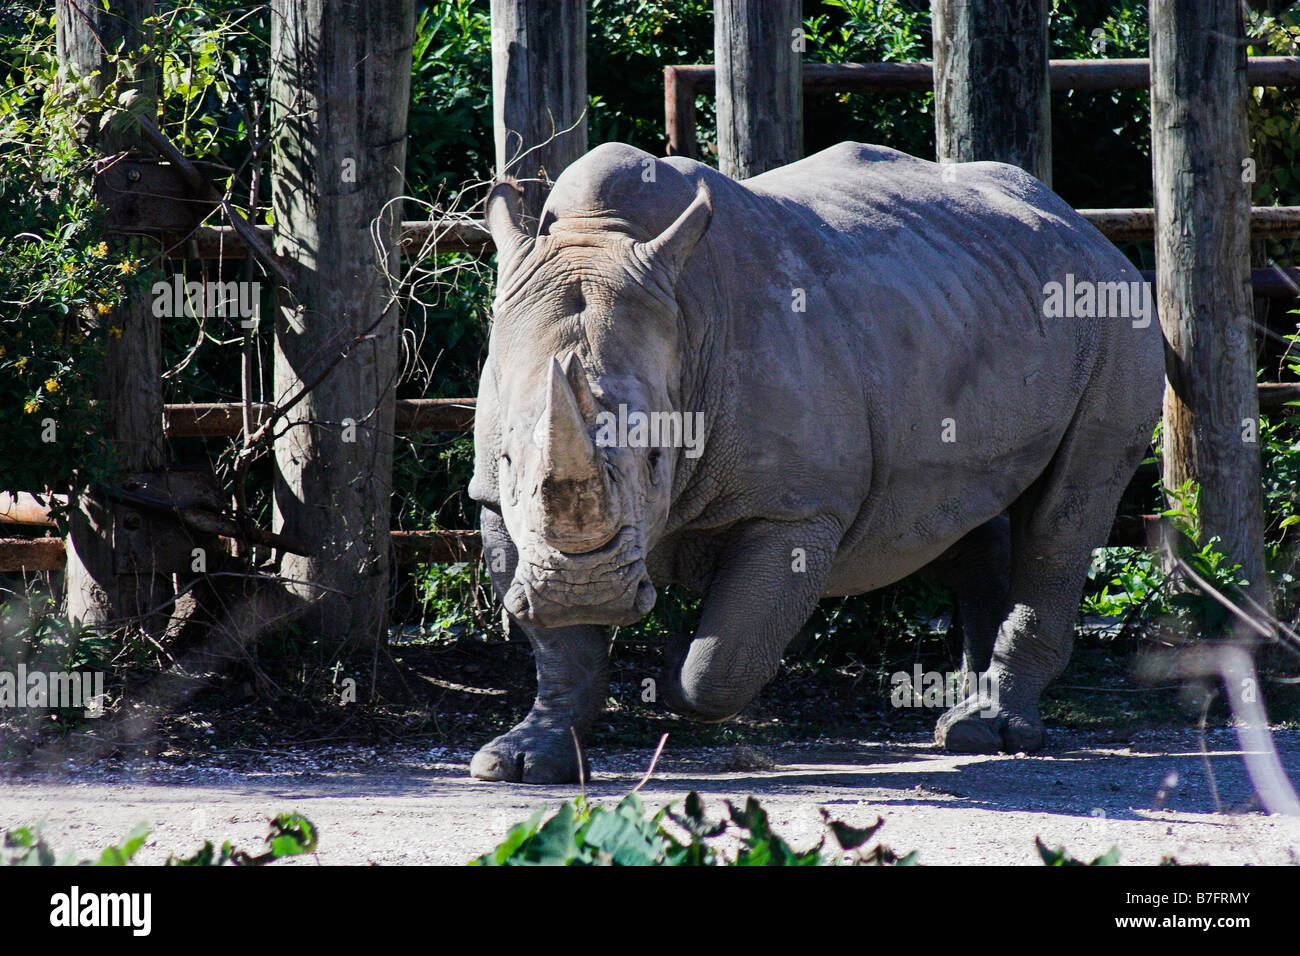 A rhinoceros charges about at the Audubon Zoo in New Orleans, Louisiana. - Stock Image